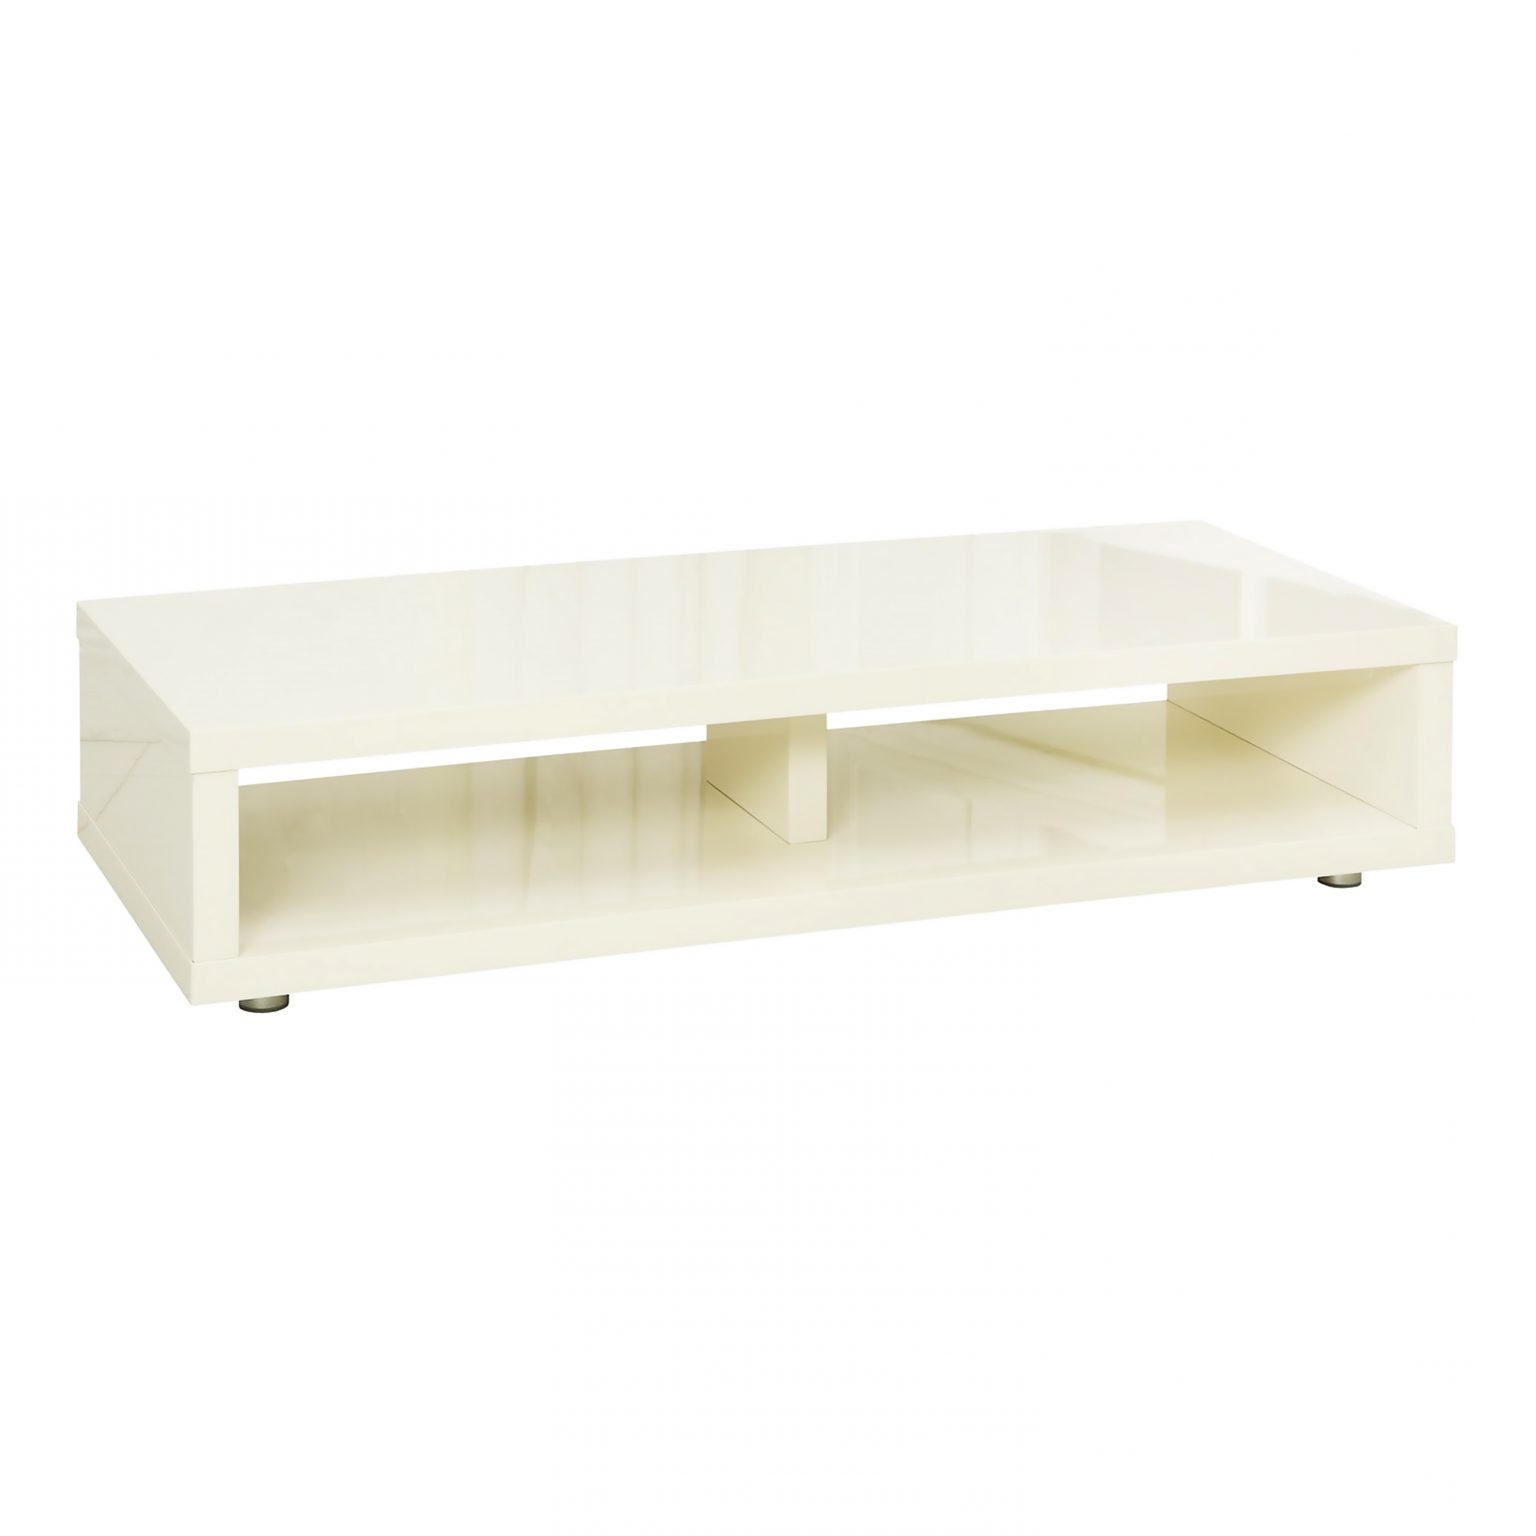 Puro Tv Unit Cream – My Furniture Direct Throughout Puro White Tv Stands (View 11 of 20)